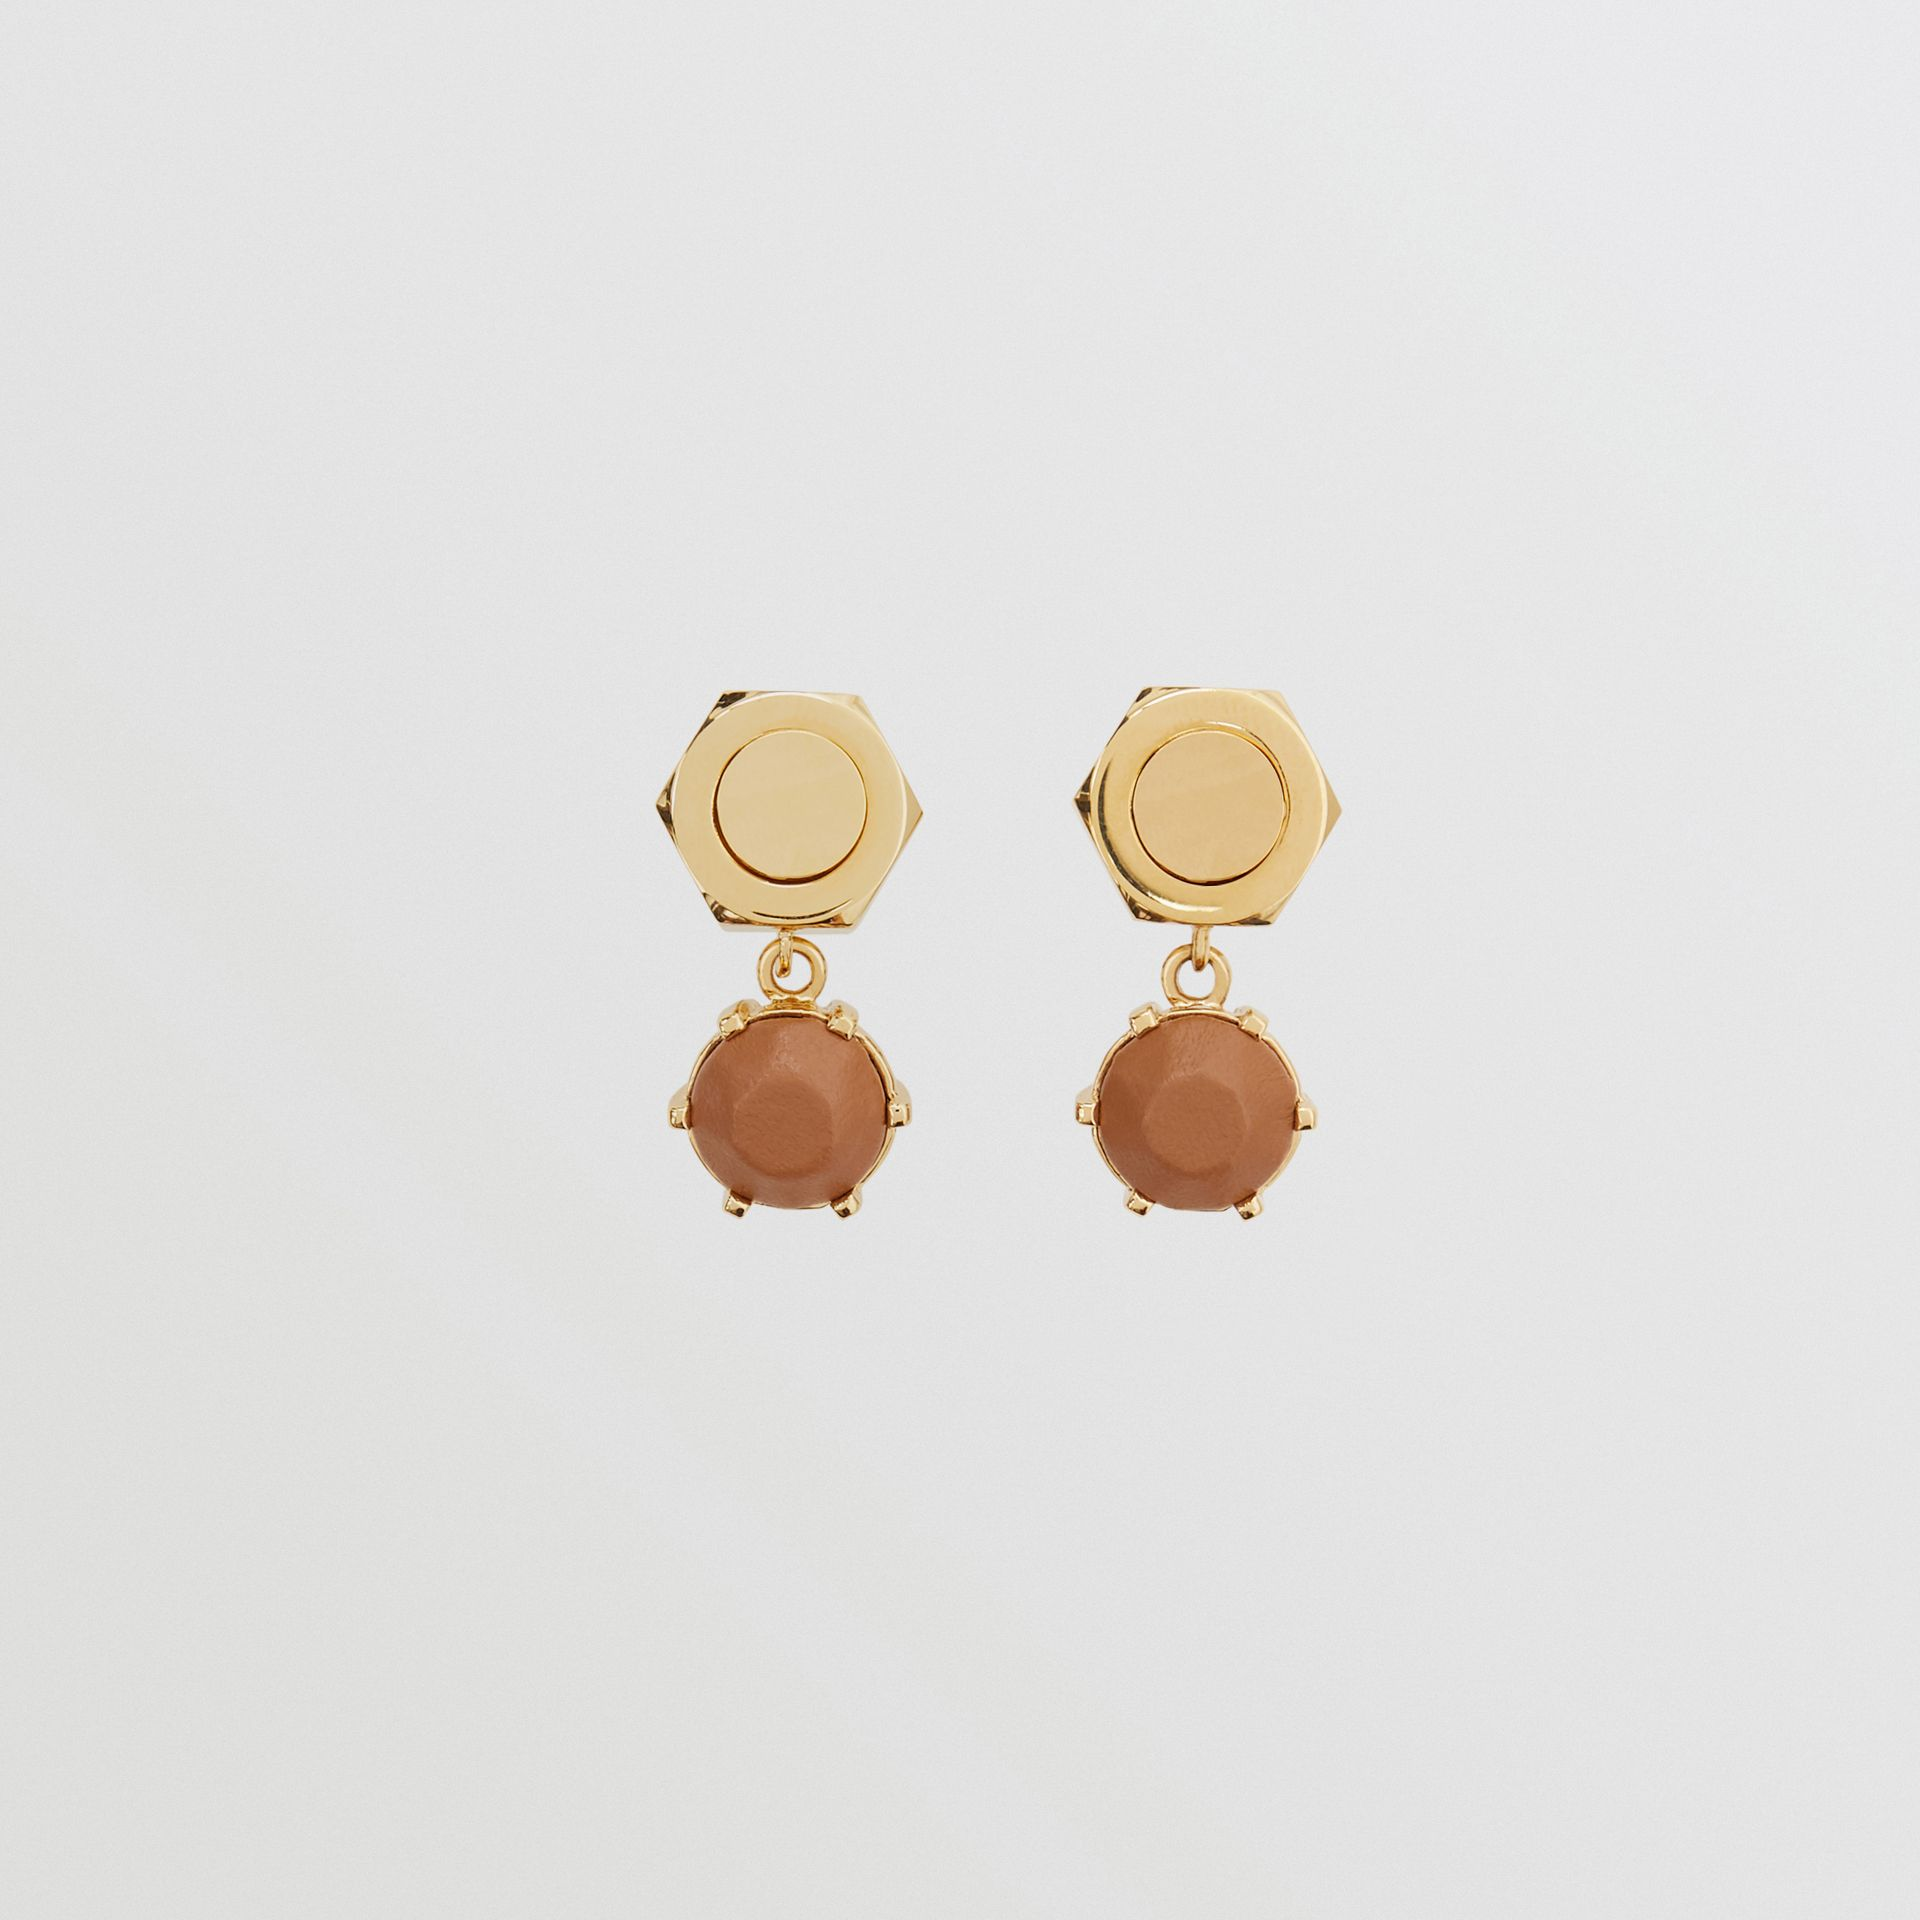 Leather Charm Gold-plated Nut and Bolt Earrings in Nutmeg/light - Women | Burberry Hong Kong S.A.R - gallery image 0